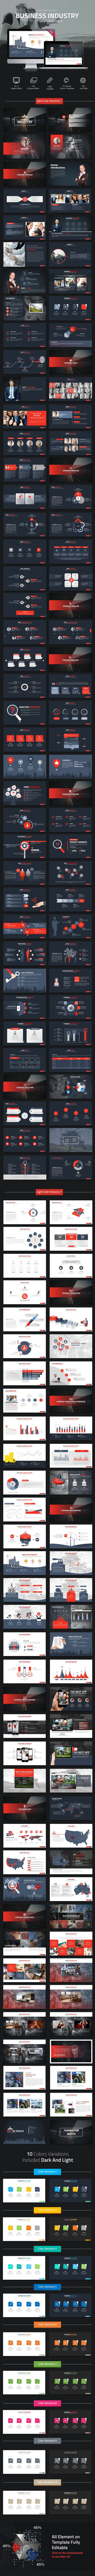 Business Industry Powerpoint Presentation #business proposal #business startup #clean • Available here → http://graphicriver.net/item/business-industry-powerpoint-presentation/11333677?s_rank=891&ref=pxcr